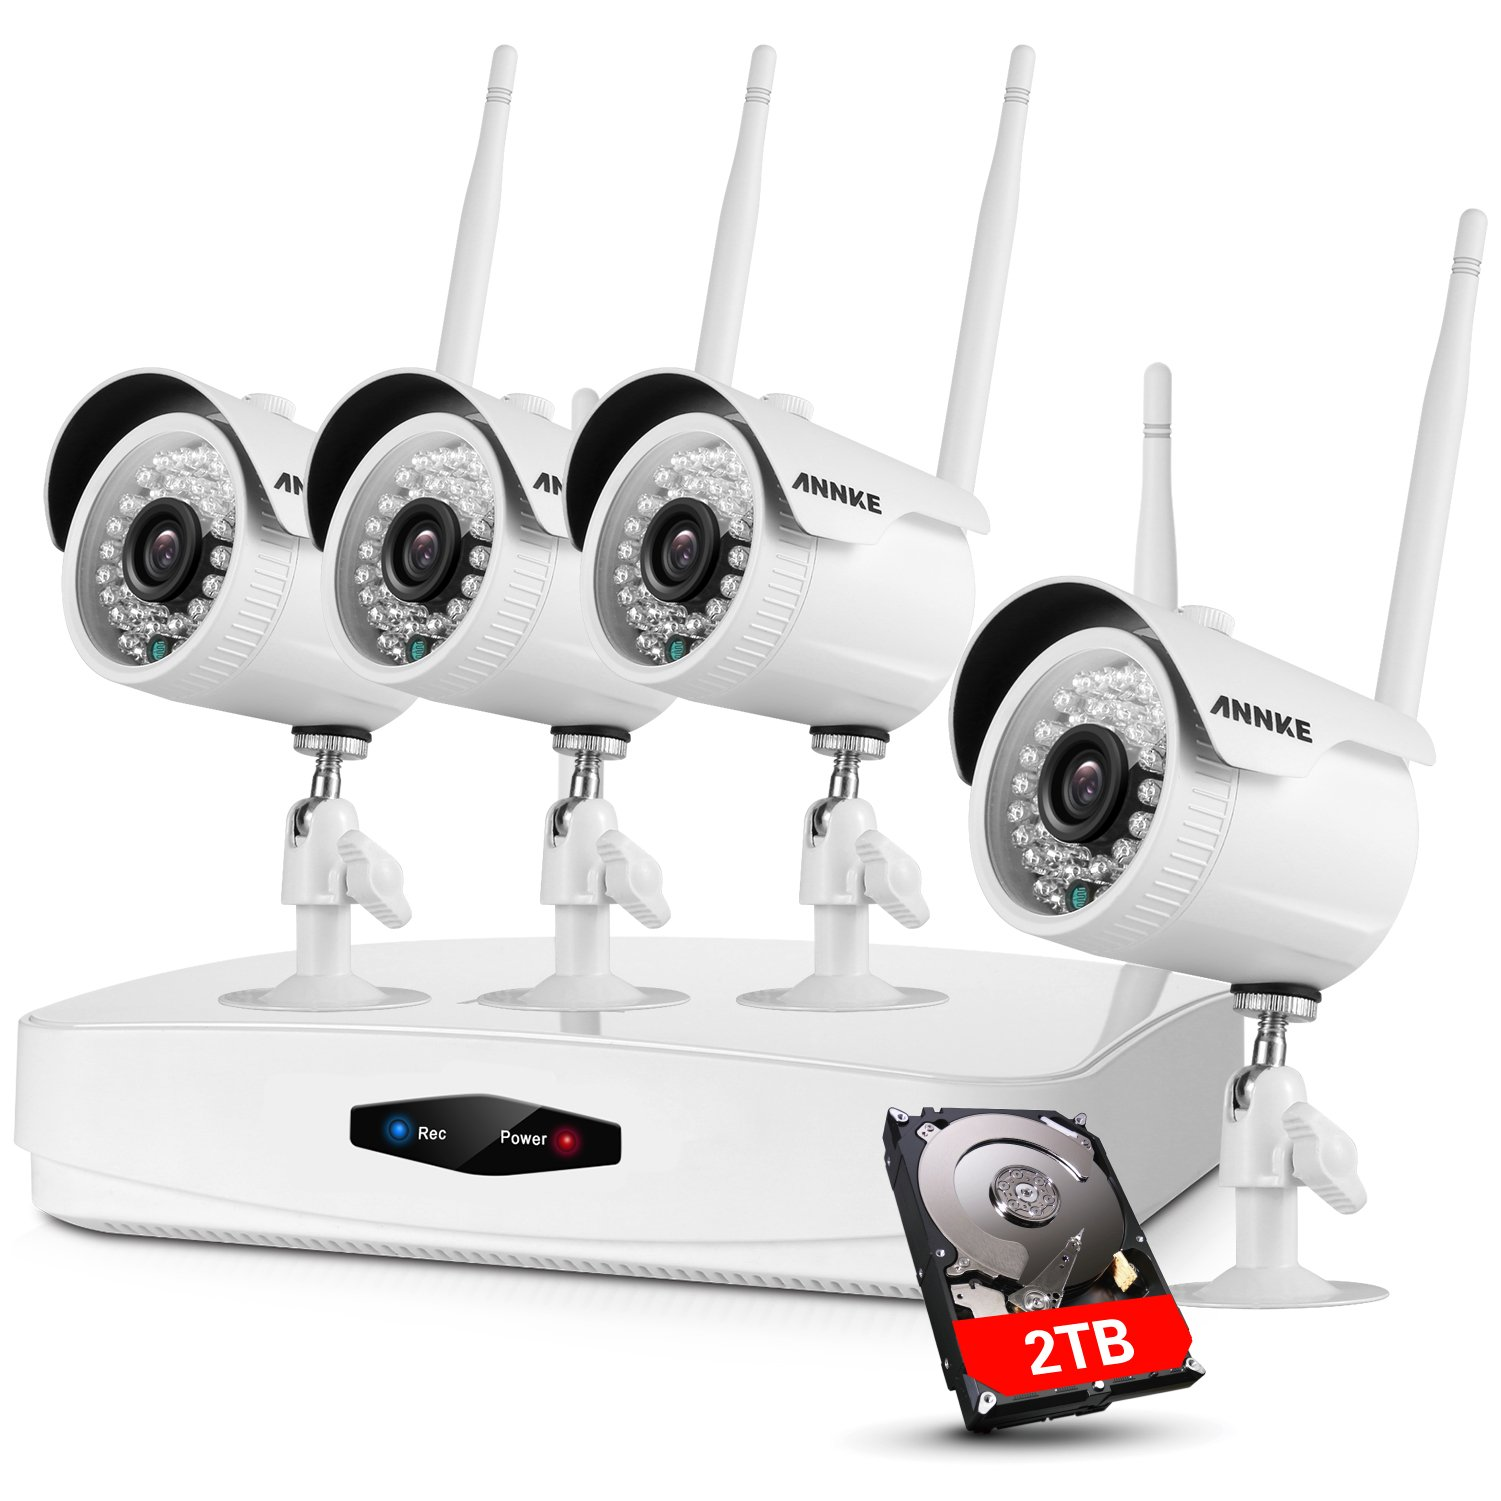 [2018 Newest] Wireless Security Camera System, ANNKE 4CH 1080P Wireless NVR System With 4pcs 2.0MP HD Security Cameras and 2TB Hard Drive, P2P Wifi Home Security System,Email Alarm, Phone Access